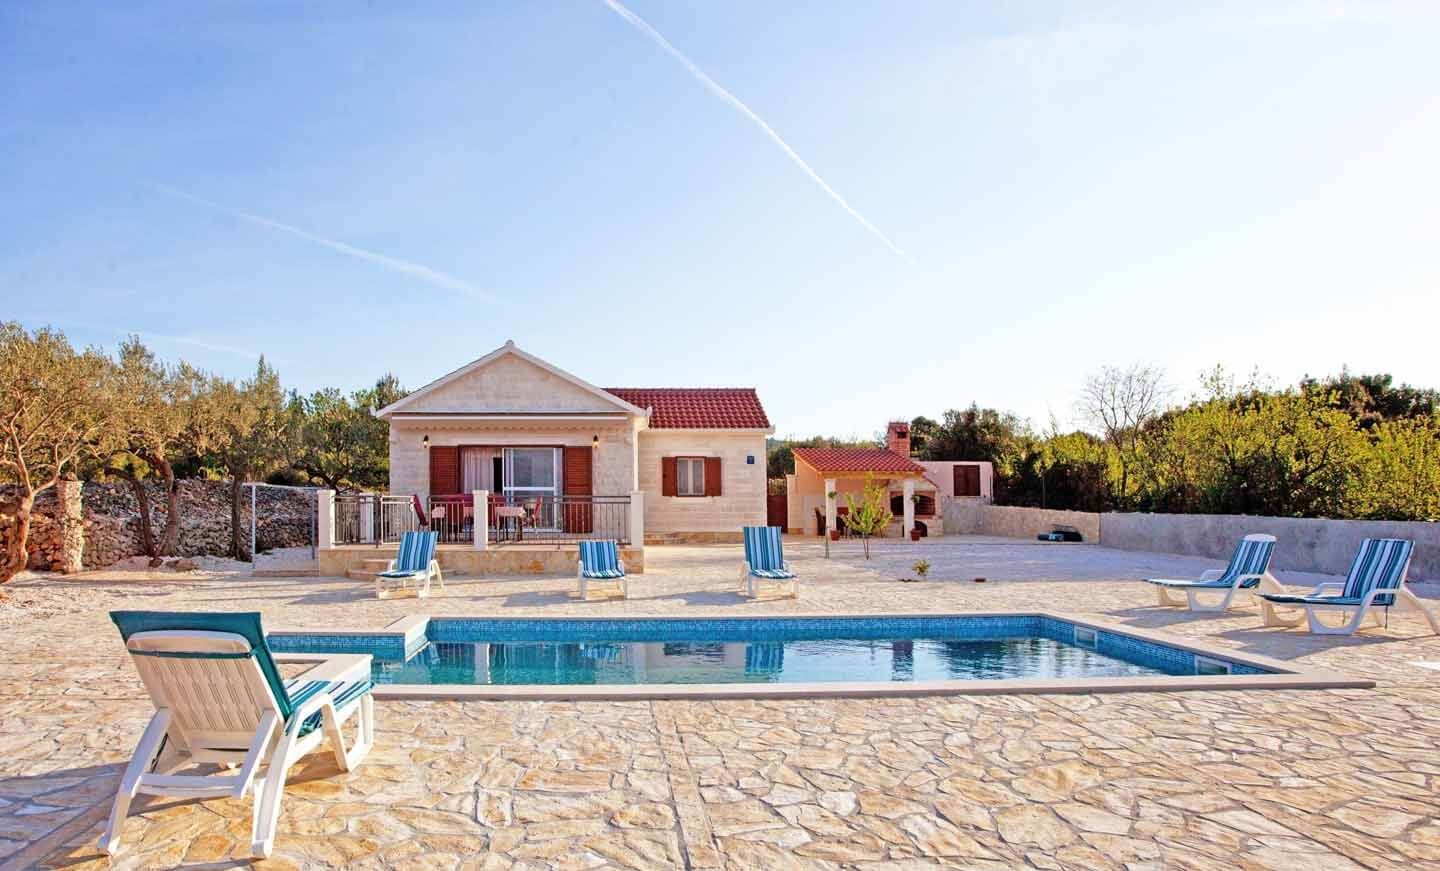 Villa and swimming pool